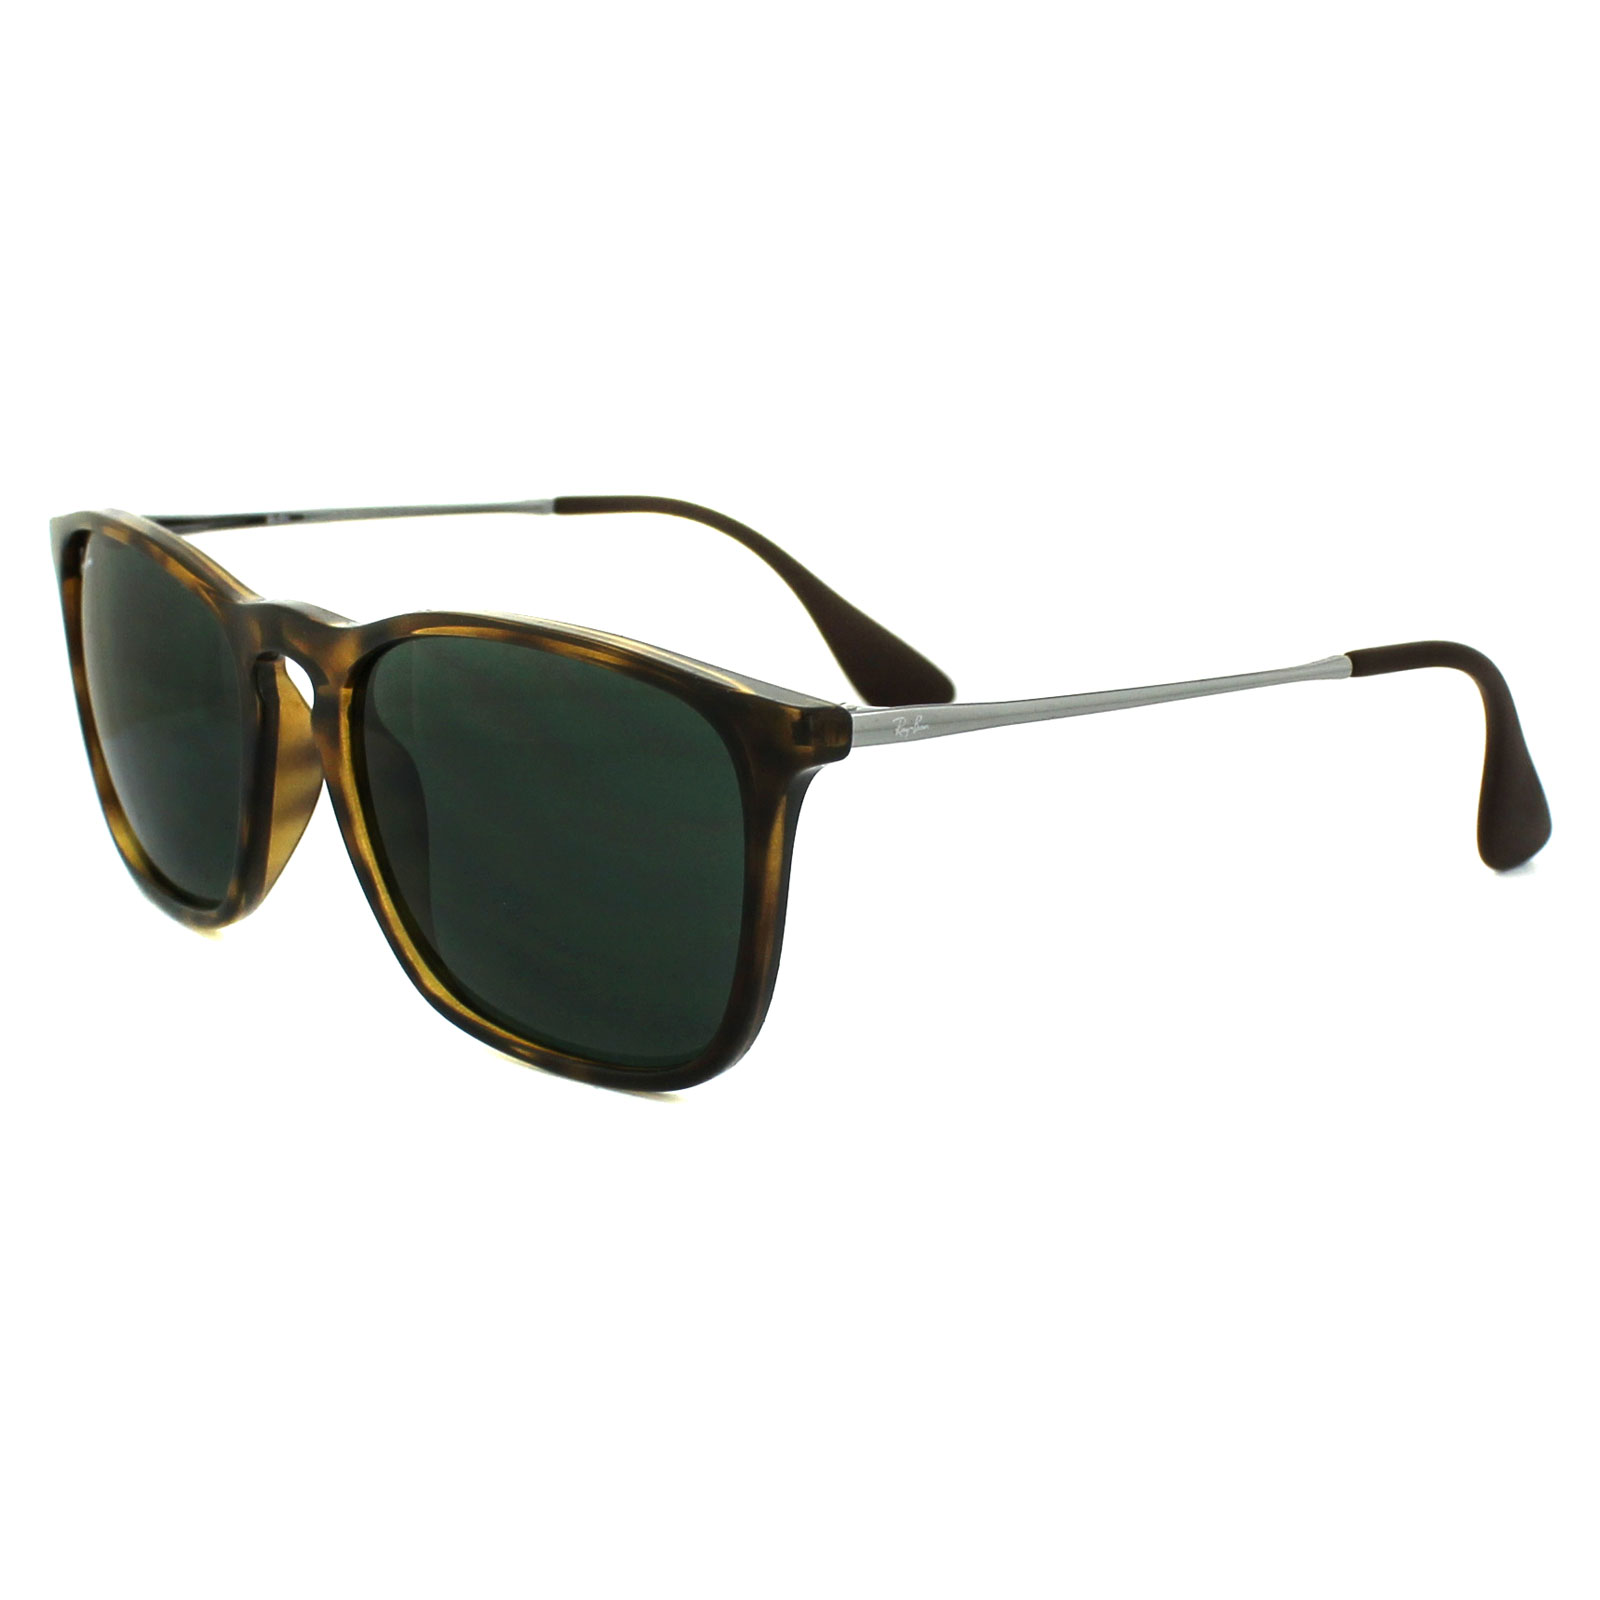 5ec957d349 Sentinel Ray-Ban Sunglasses Chris 4187 710 71 Tortoise   Gunmetal Green